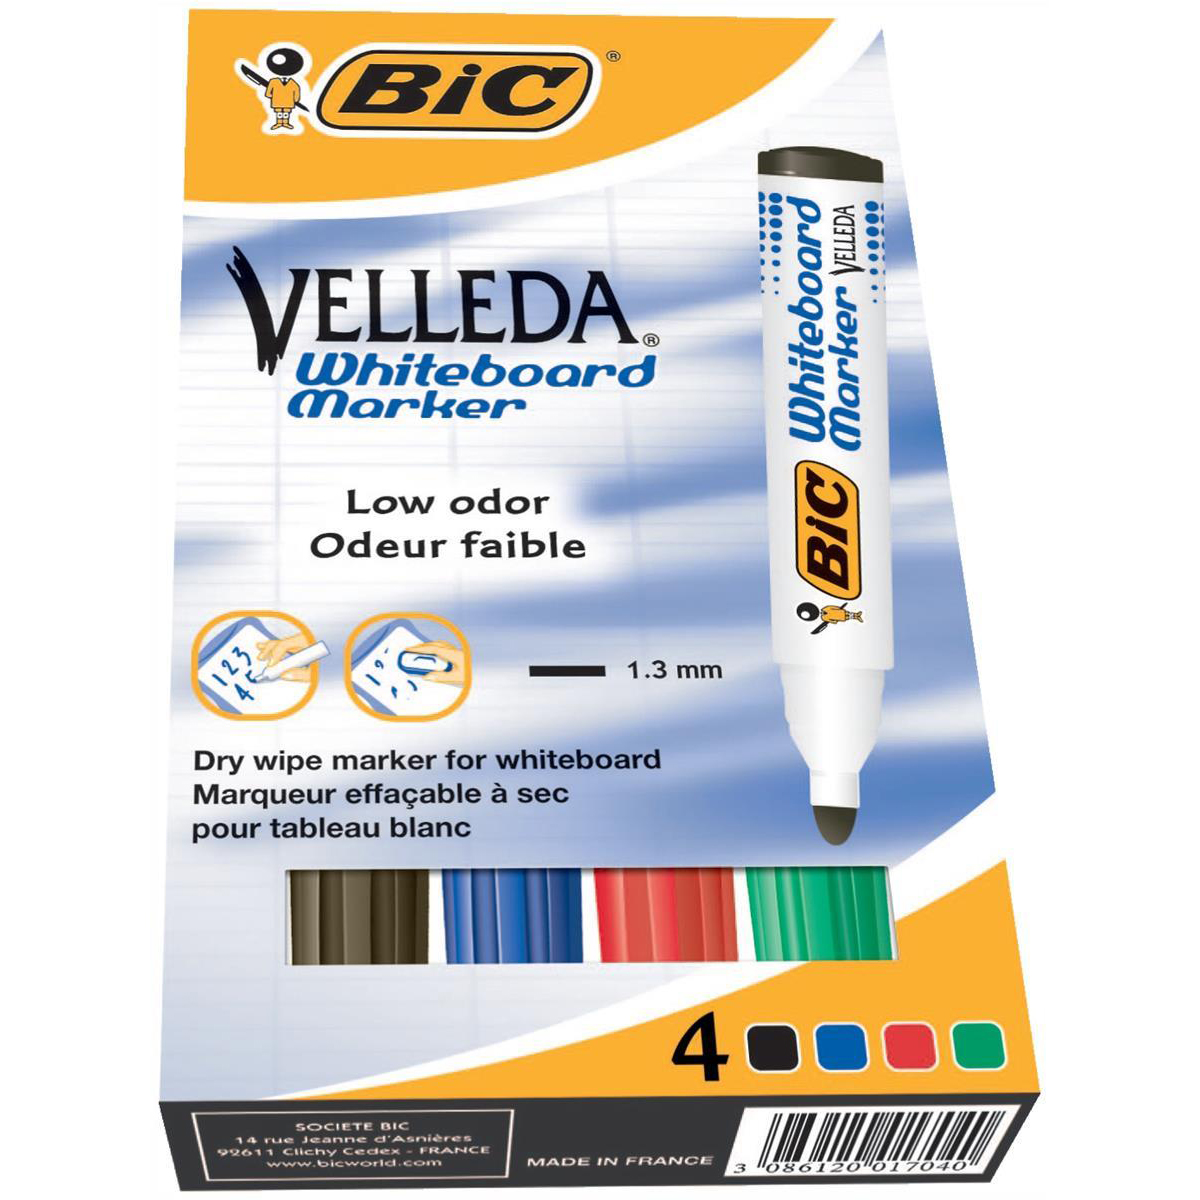 Bic Velleda Marker Whiteboard Dry-wipe 1701 Large Bullet Tip 1.5mm Line Assorted Ref 904941 Pack 4